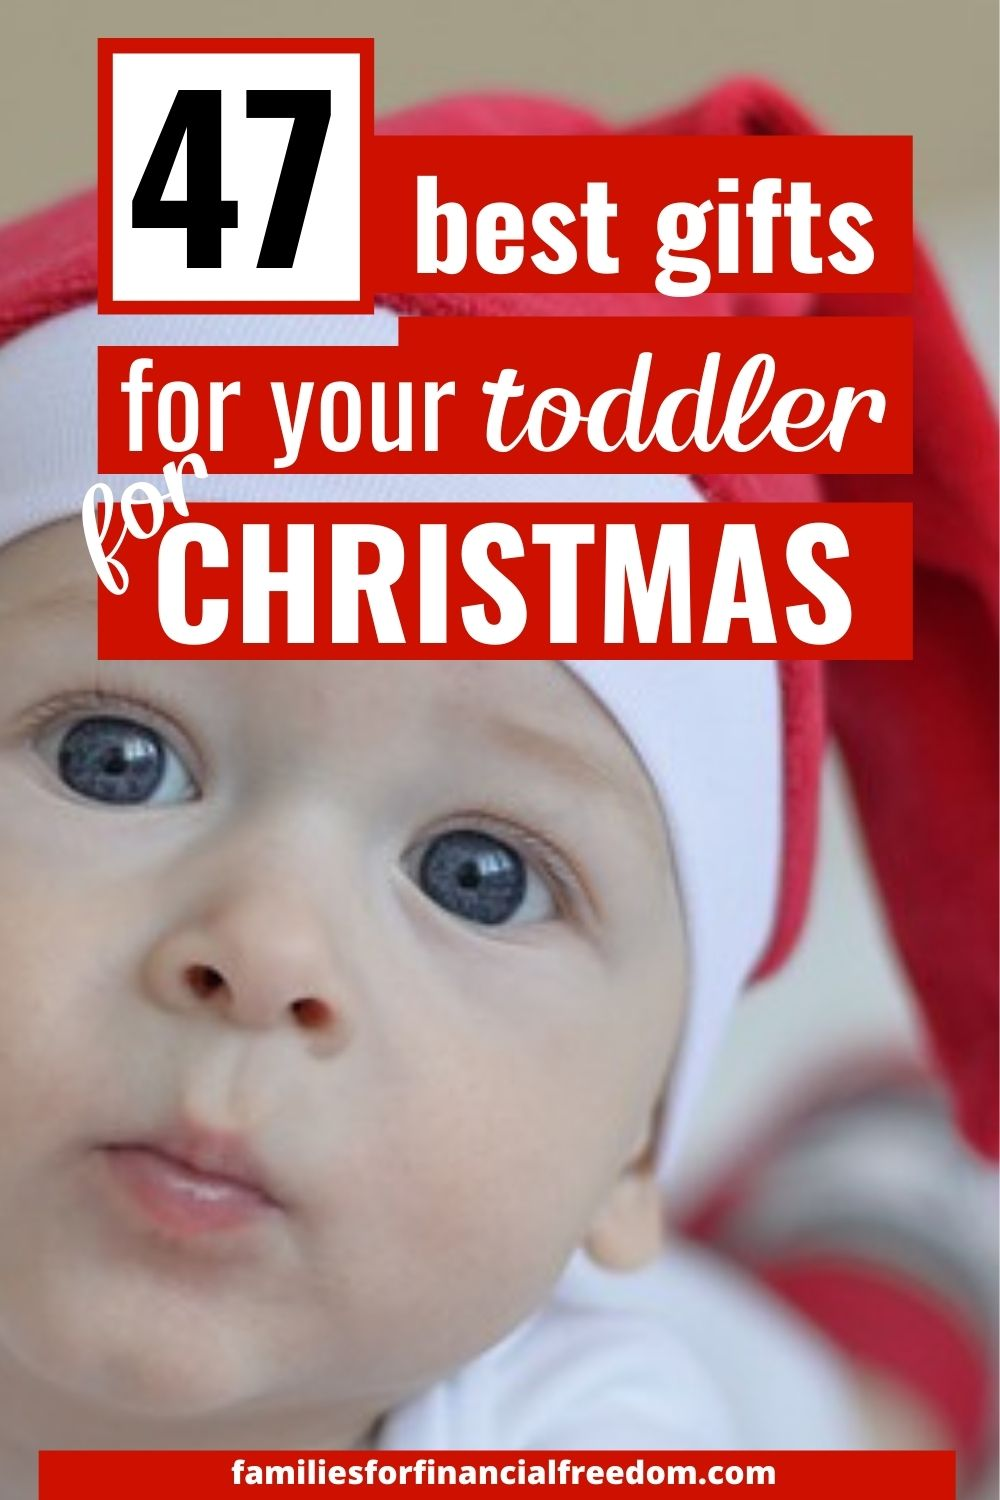 Christmas gifts for toddlers and babies